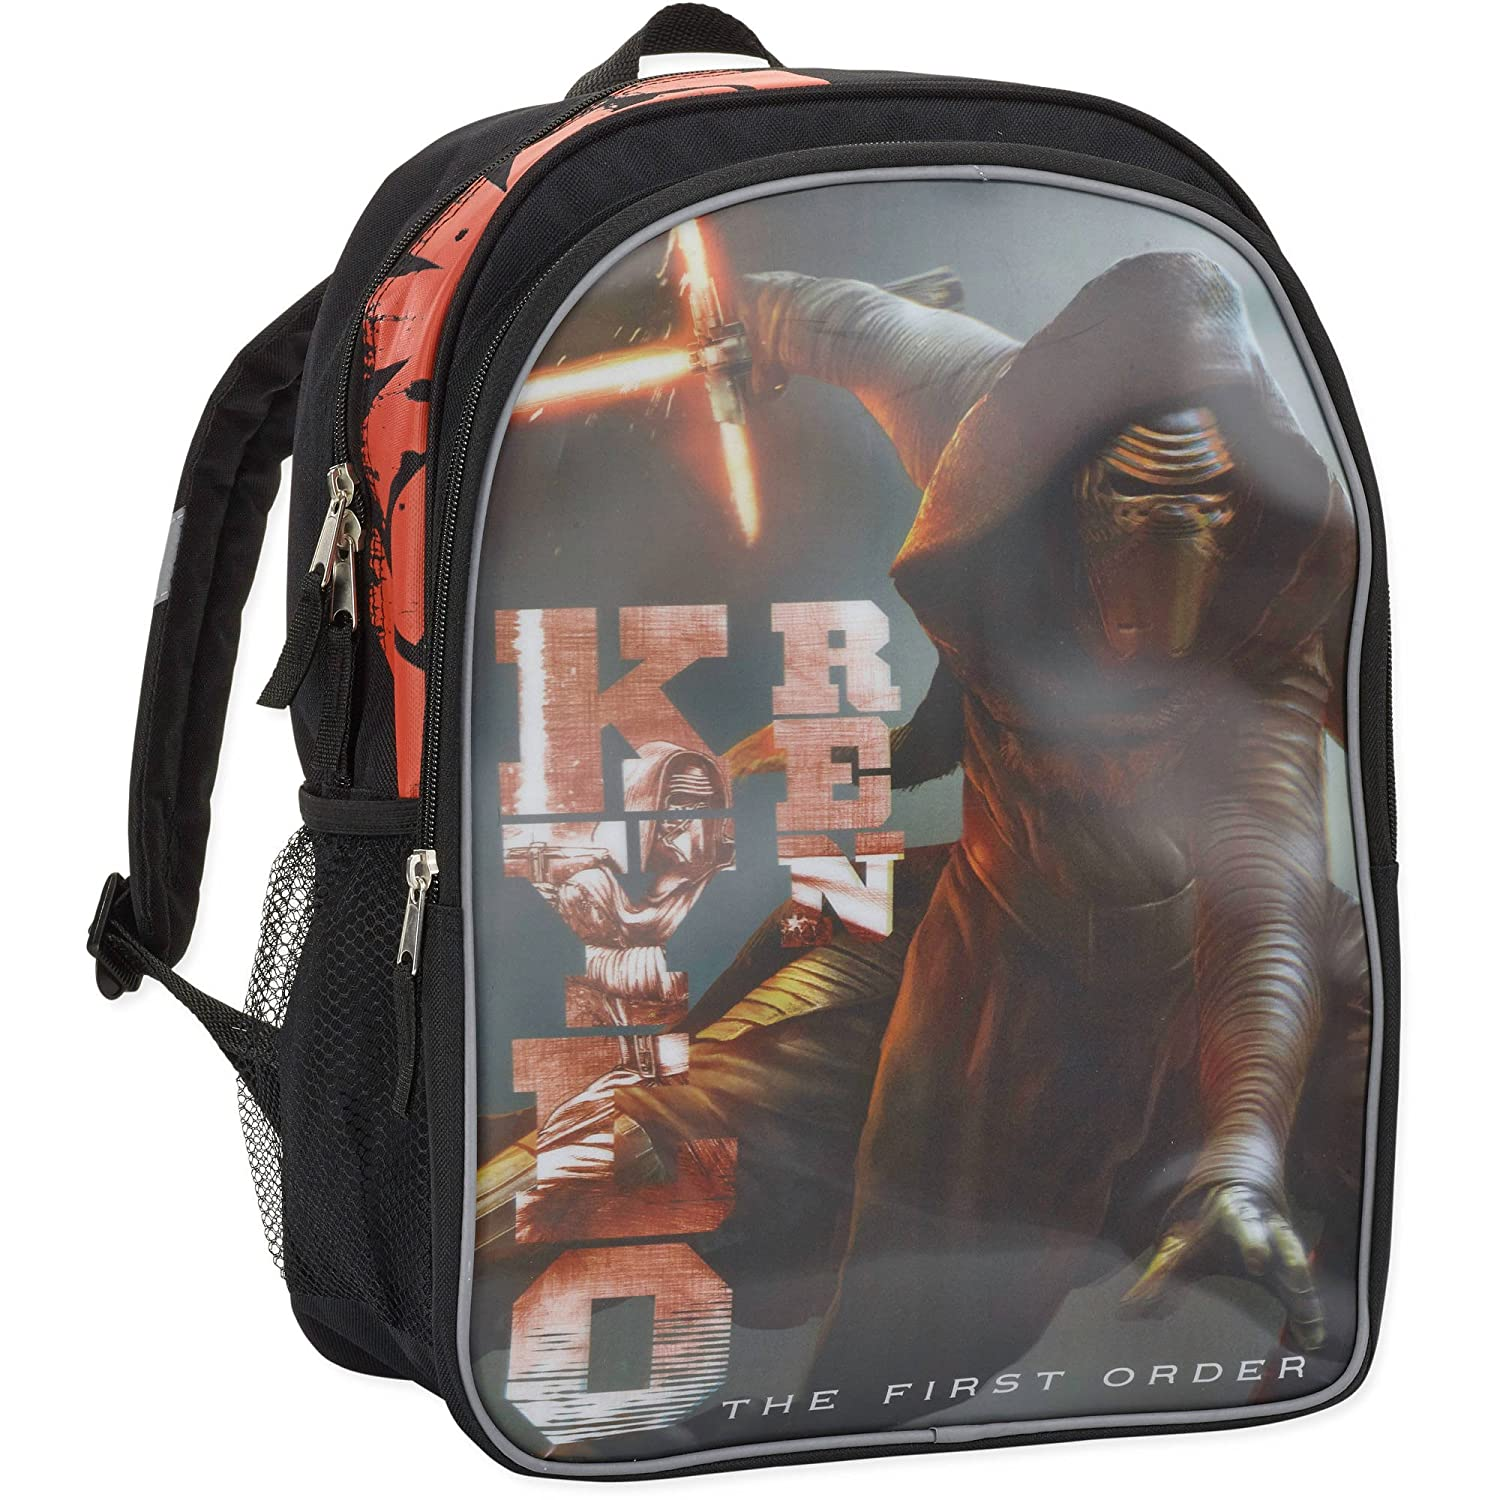 new Star Wars Kylo Ren The First Order 16 inch Backpack with Side Mesh Pockets